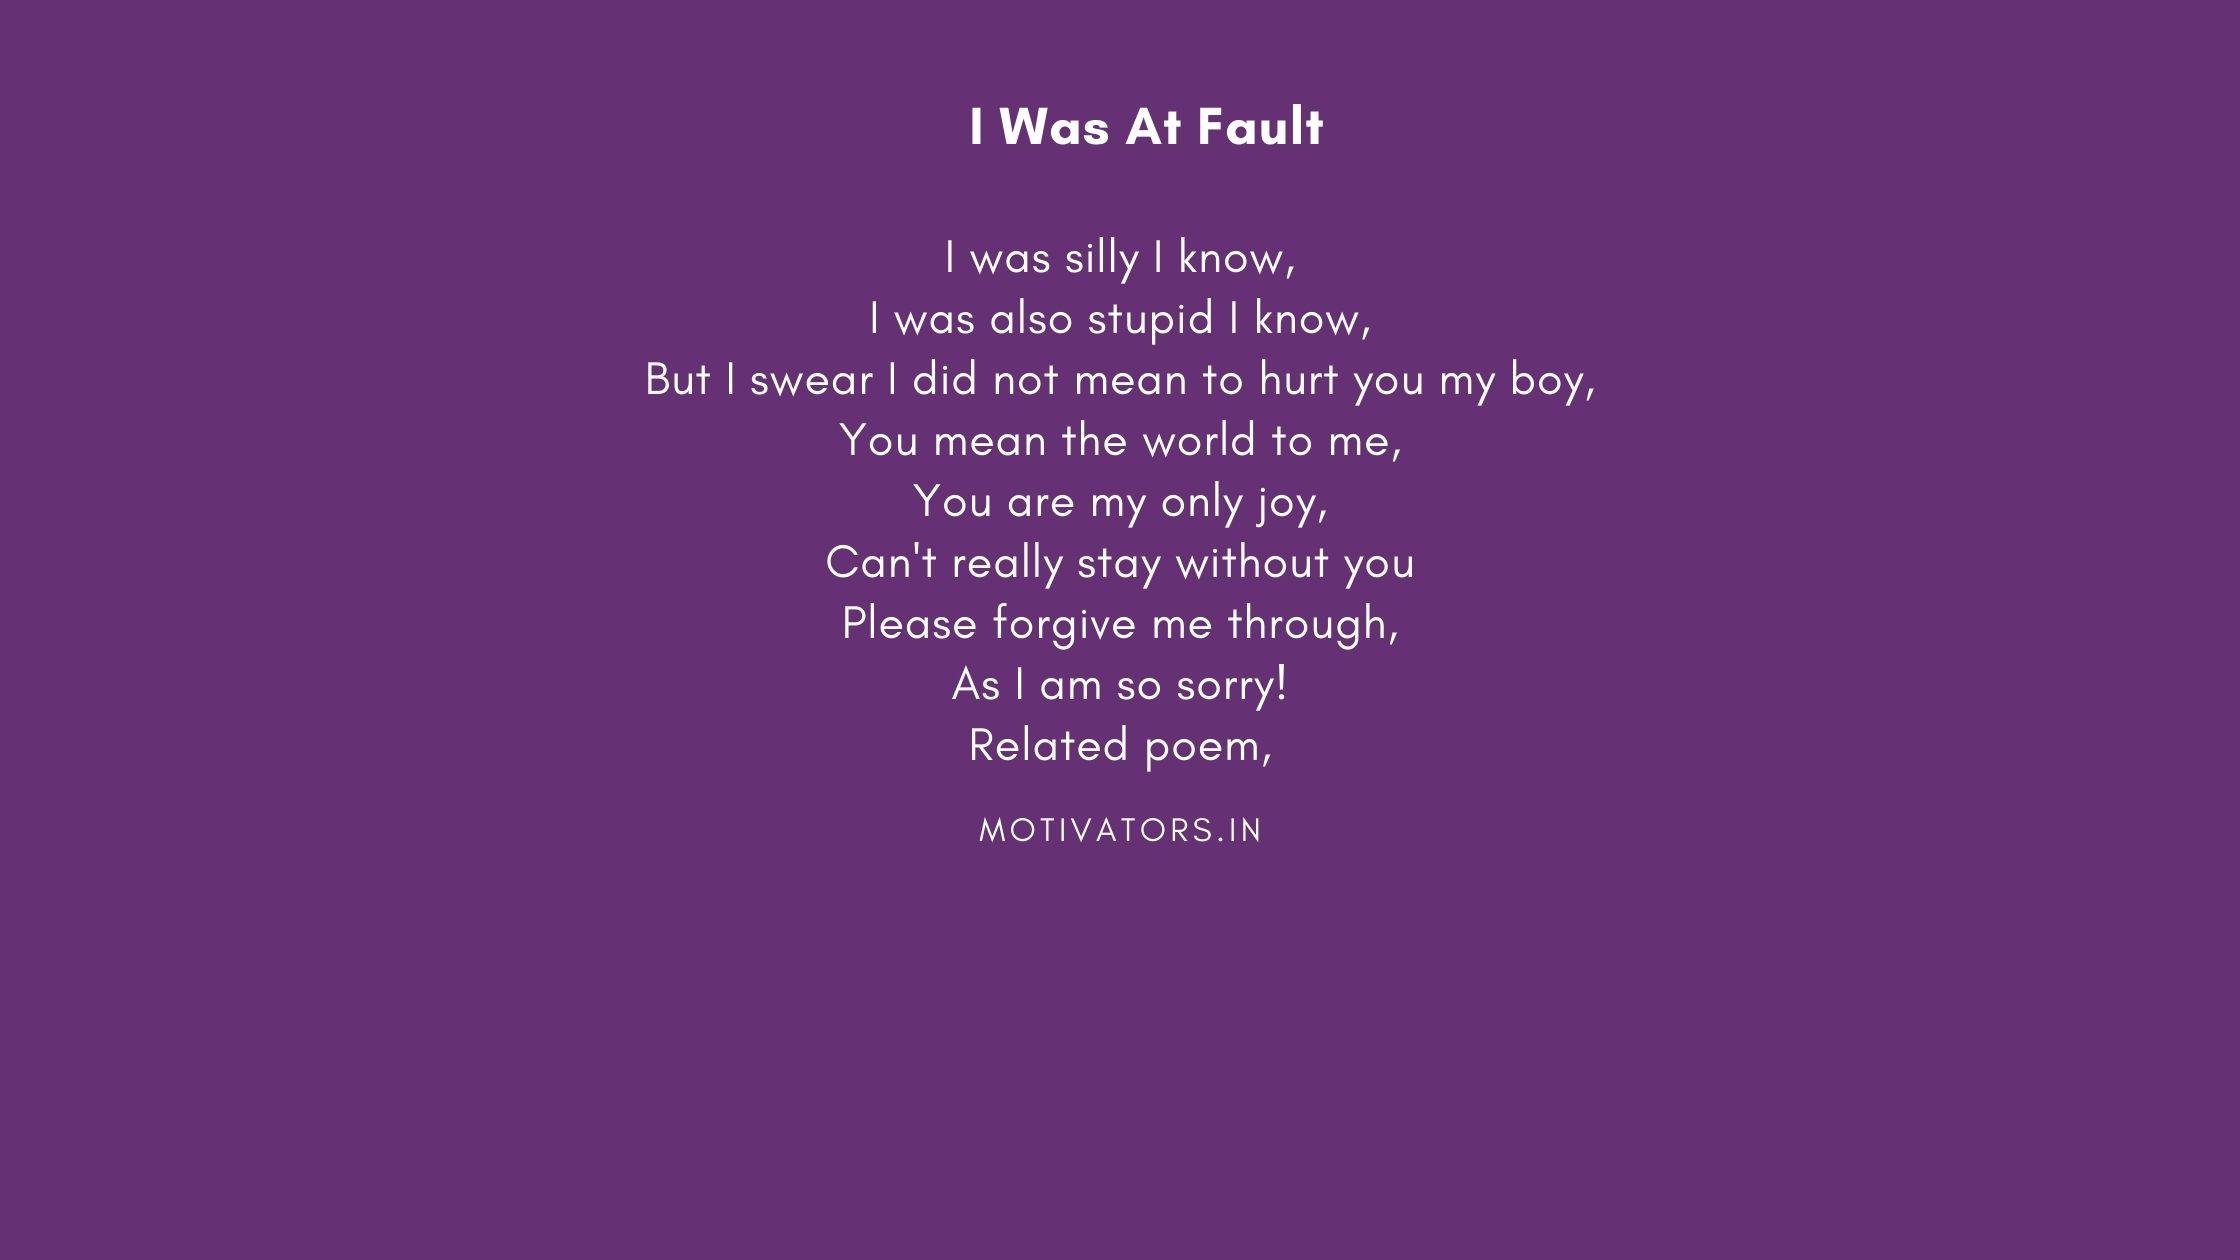 I Was At Fault